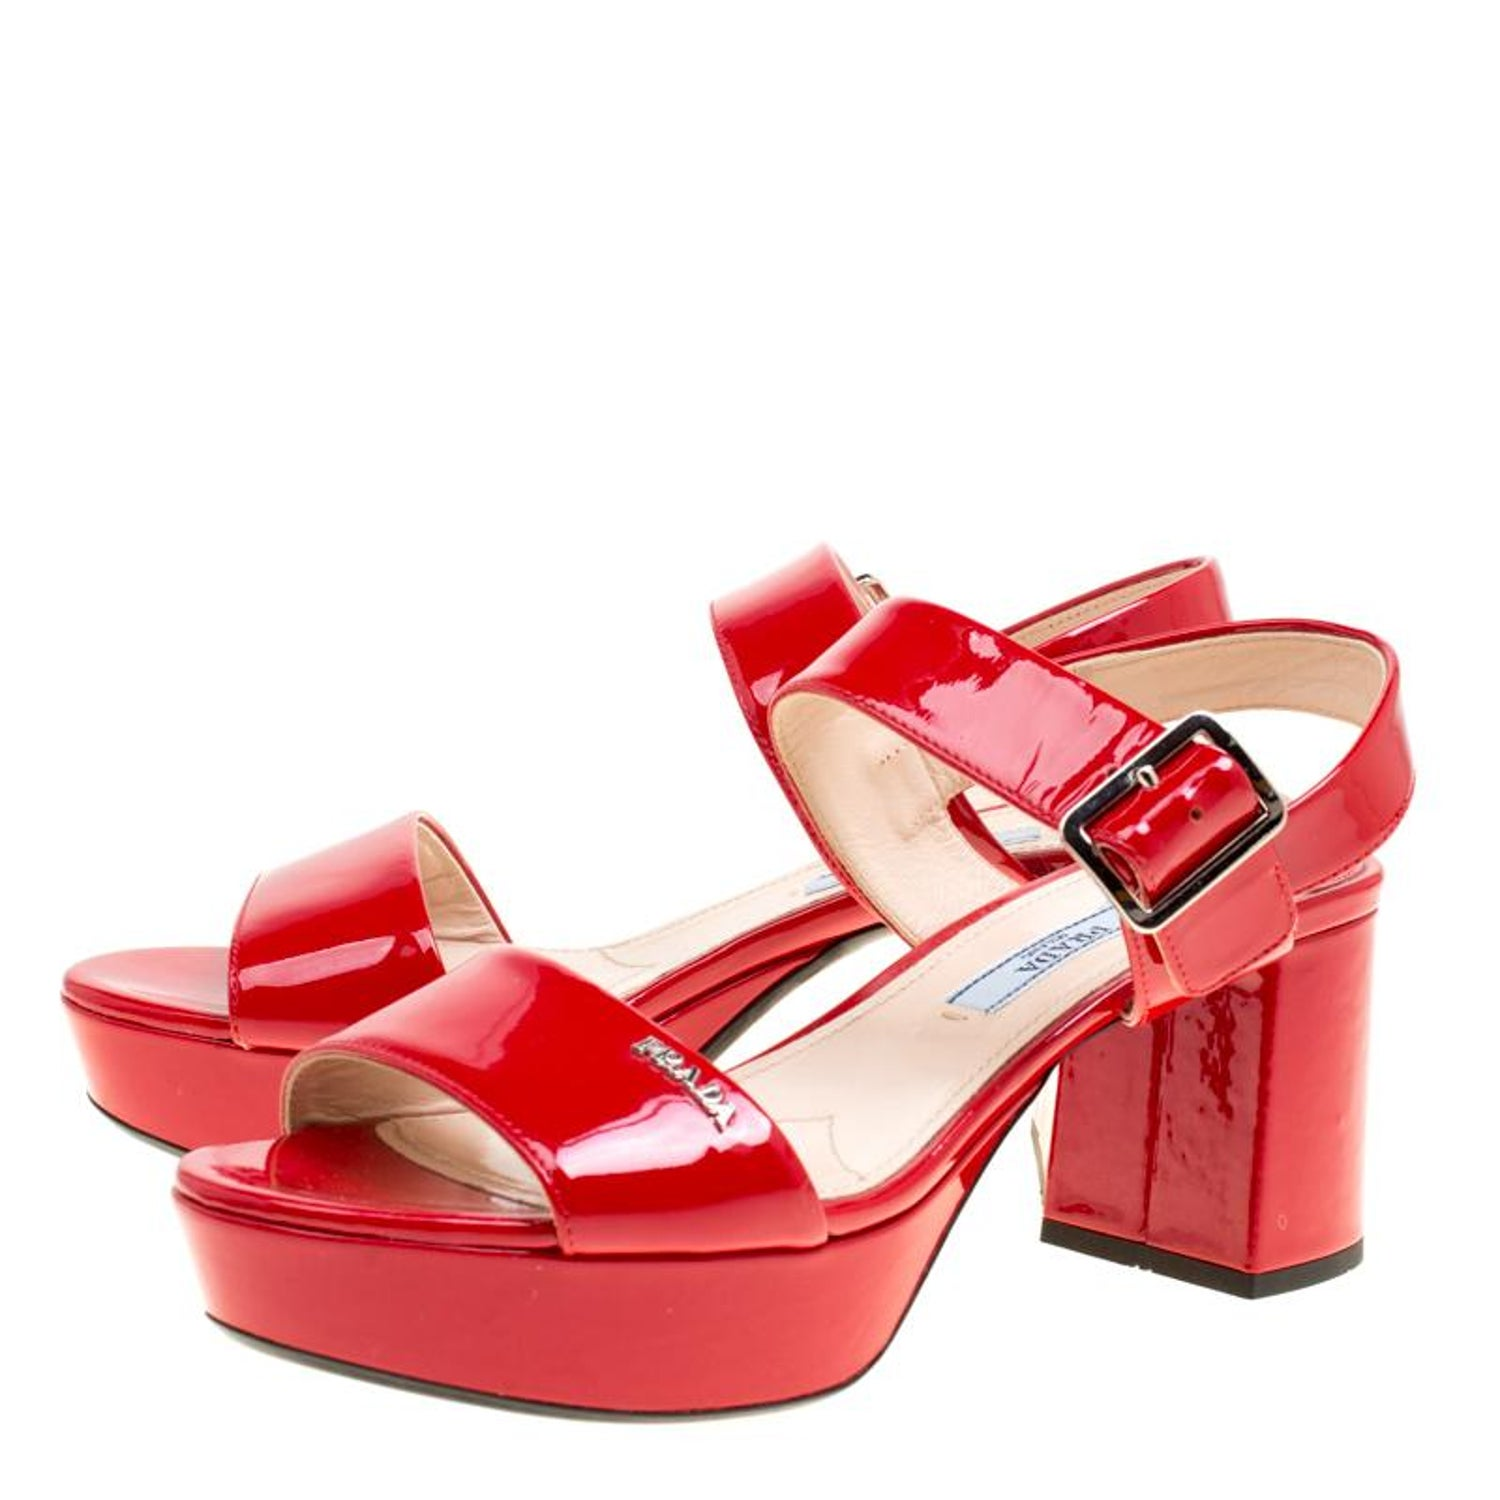 e97a9c7f779 Prada Red Patent Leather Ankle Strap Block Heel Sandals Size 35